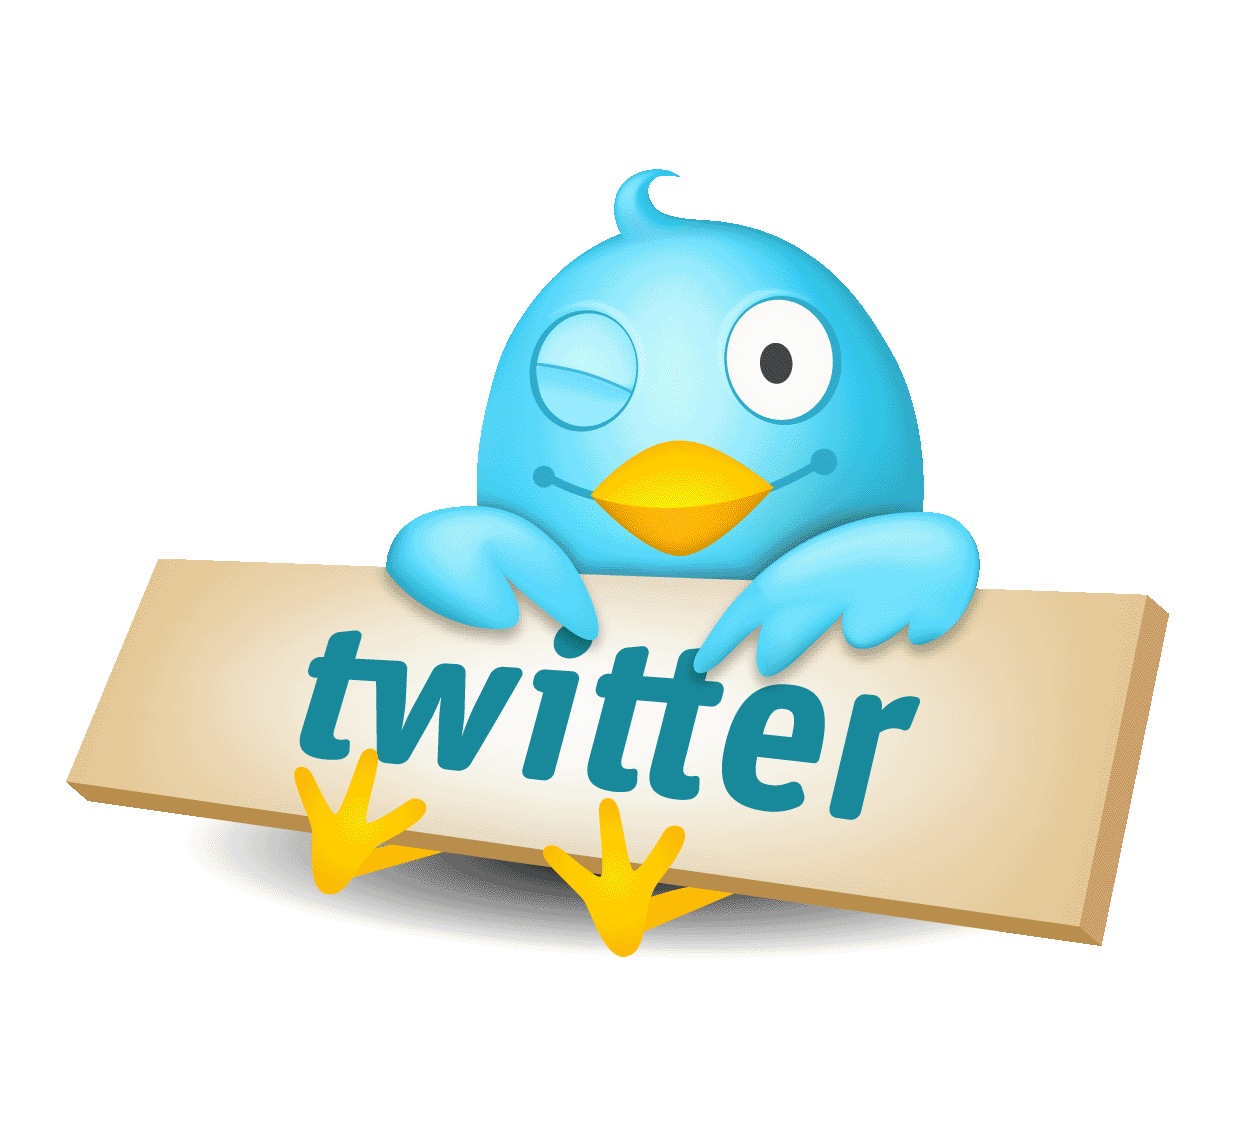 Twitter Basics for the Business Owner